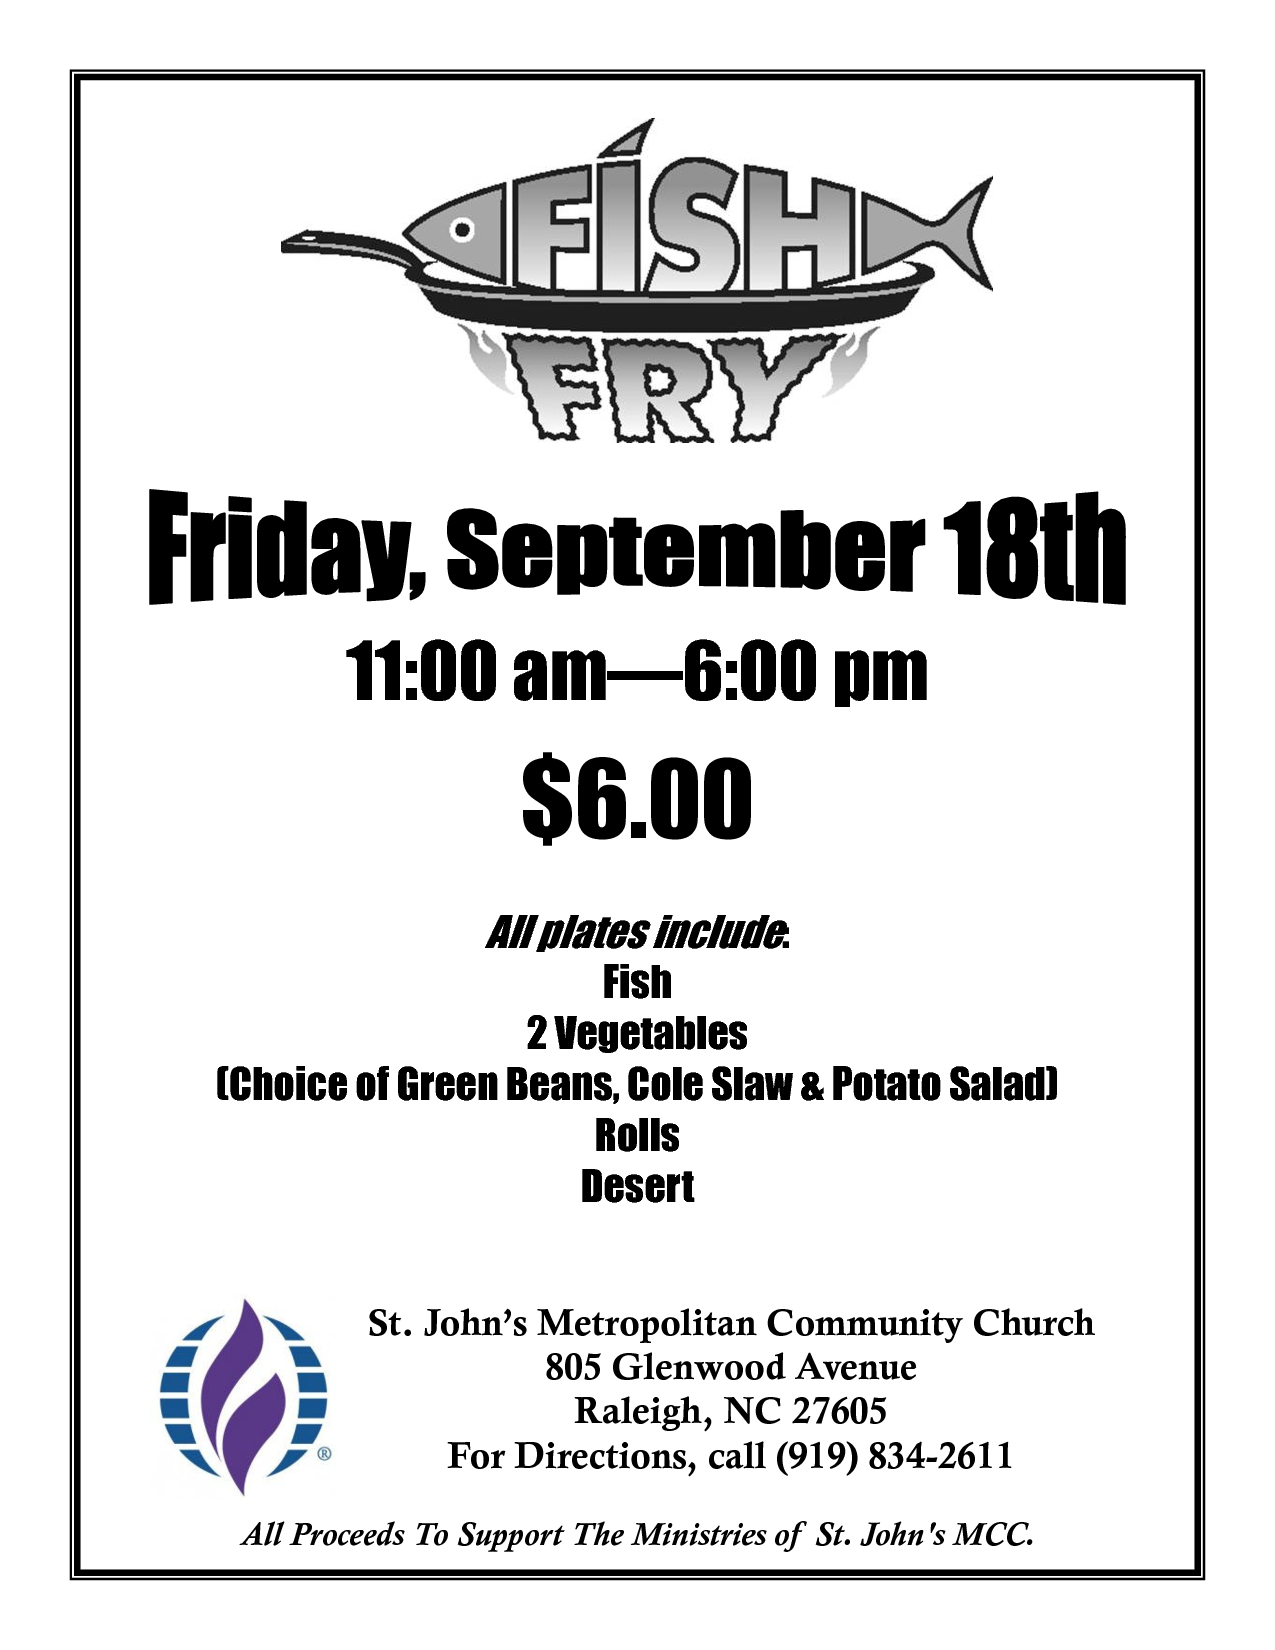 Free Fish-Fry Flyer Templates   Fish Fry Poster   Fish Fry   Fried - Free Printable Flyers For Church